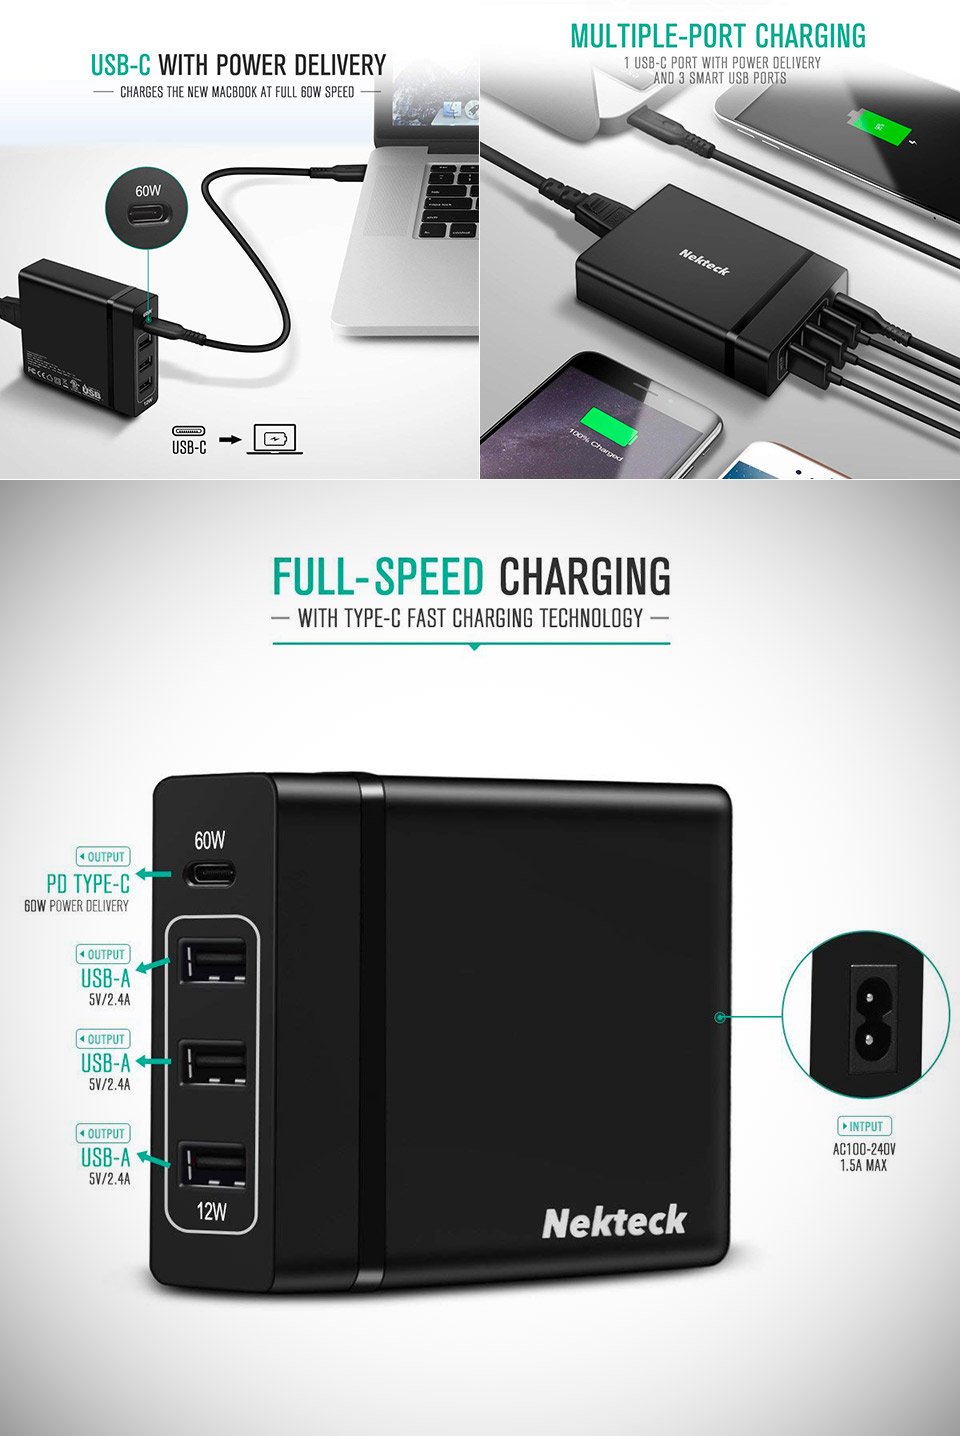 Nekteck 72W USB Wall Charger